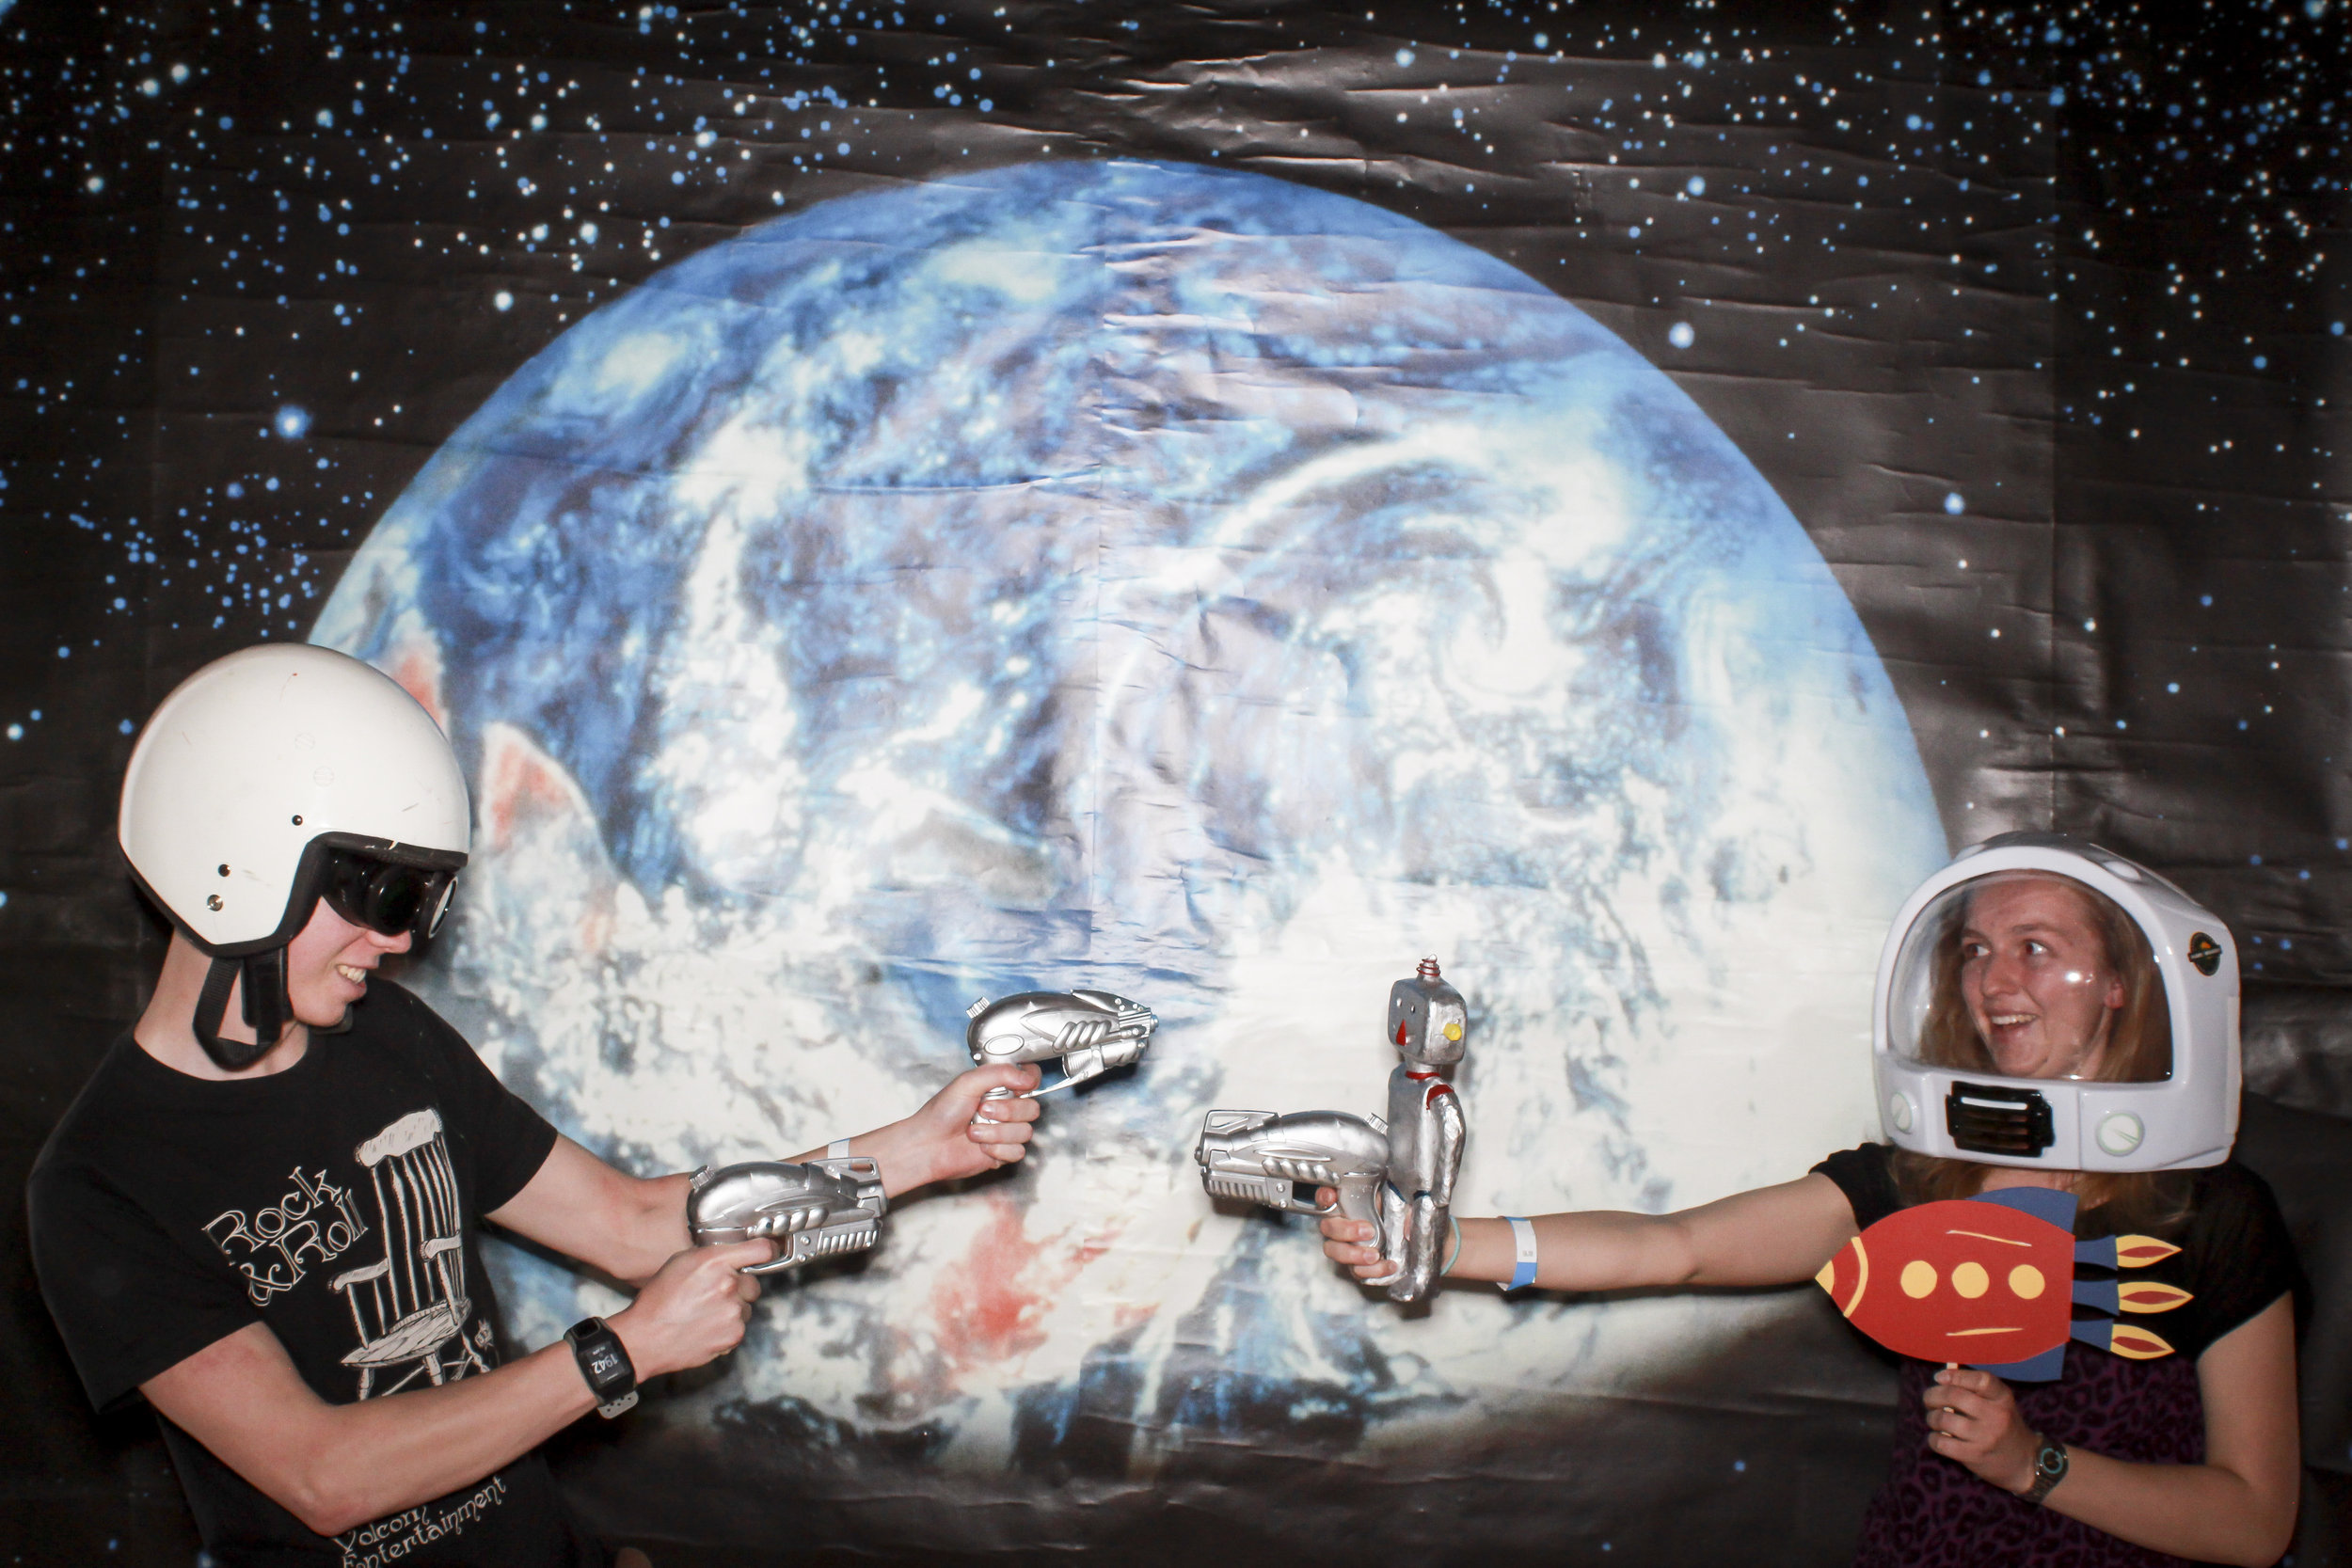 Space photobooth